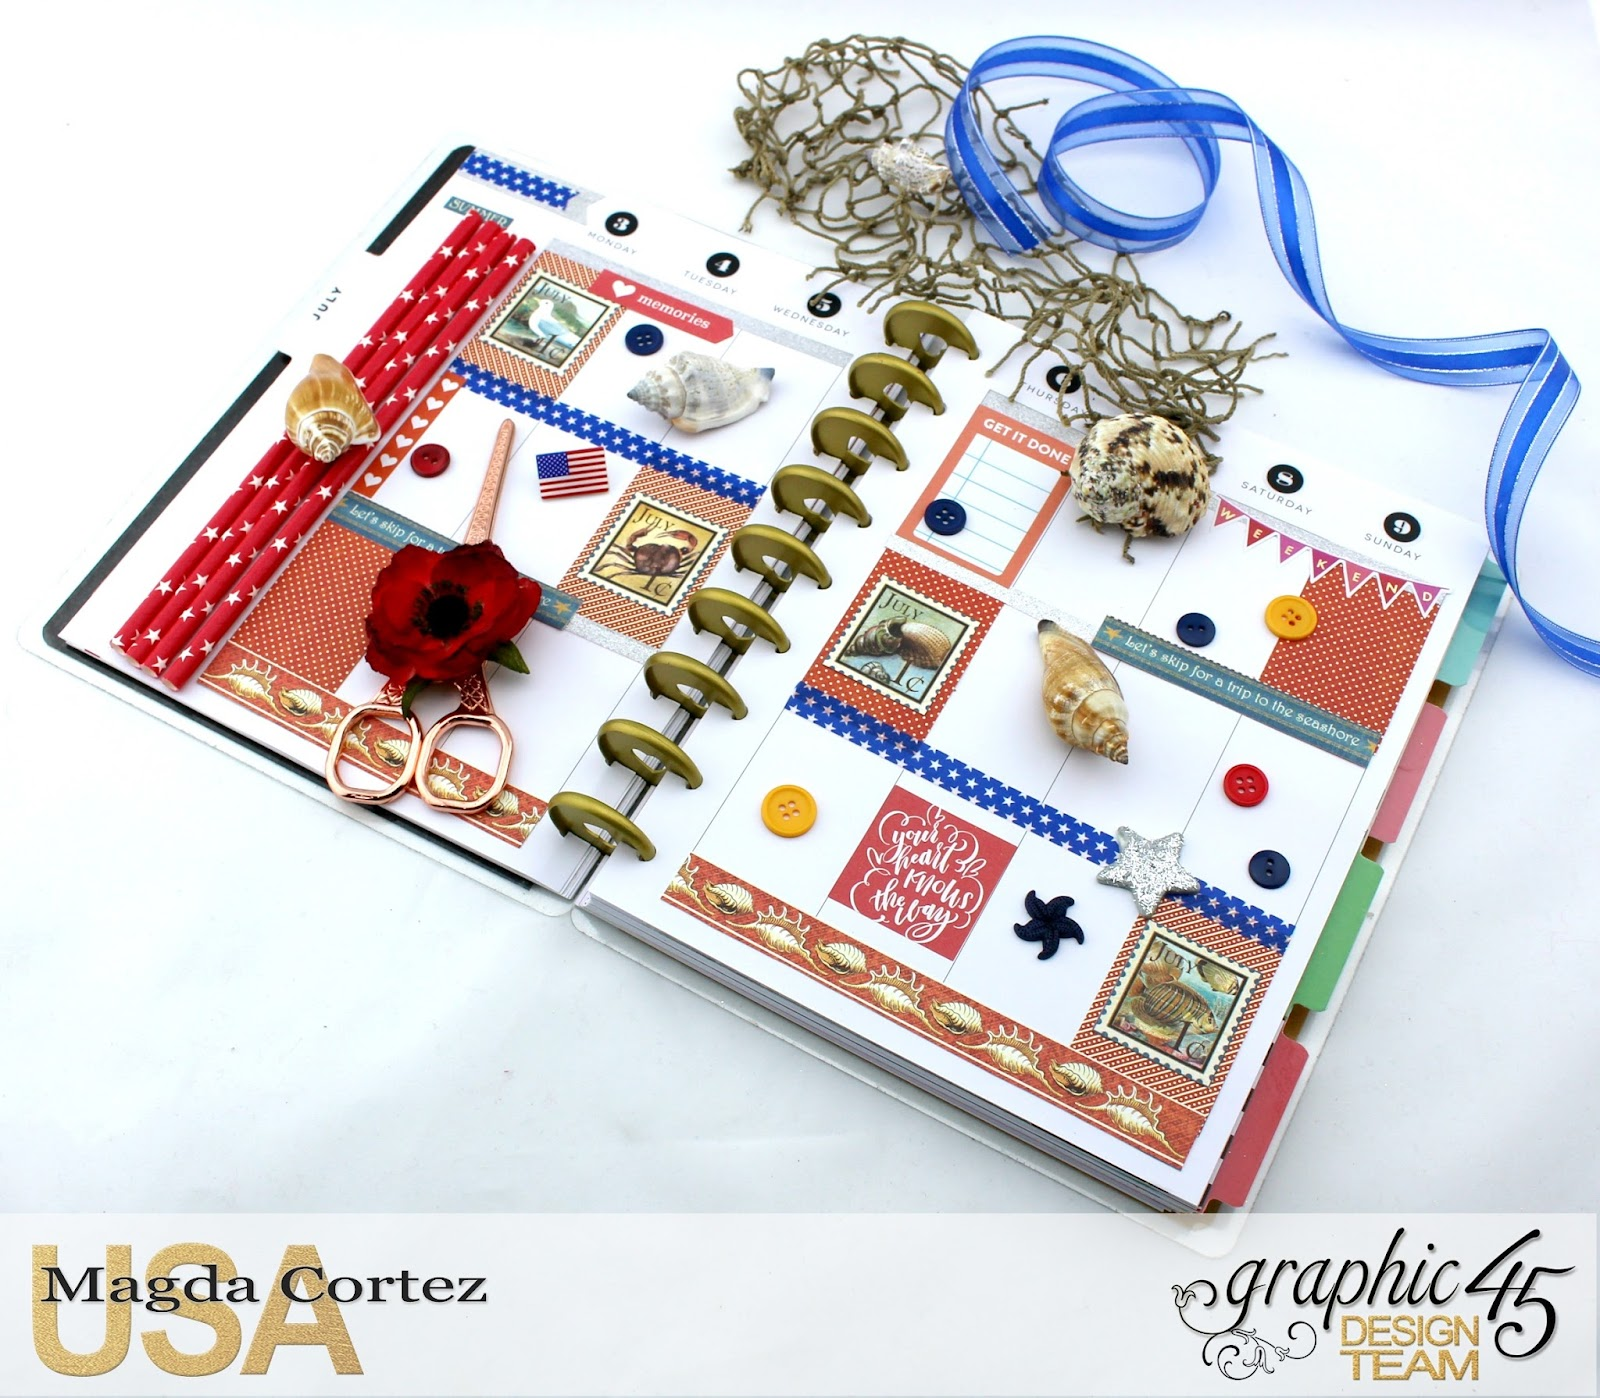 My JULY G45 Planner, Children's Hour By Magda Cortez, Product by G45, Photo 11 of 20 .jpg